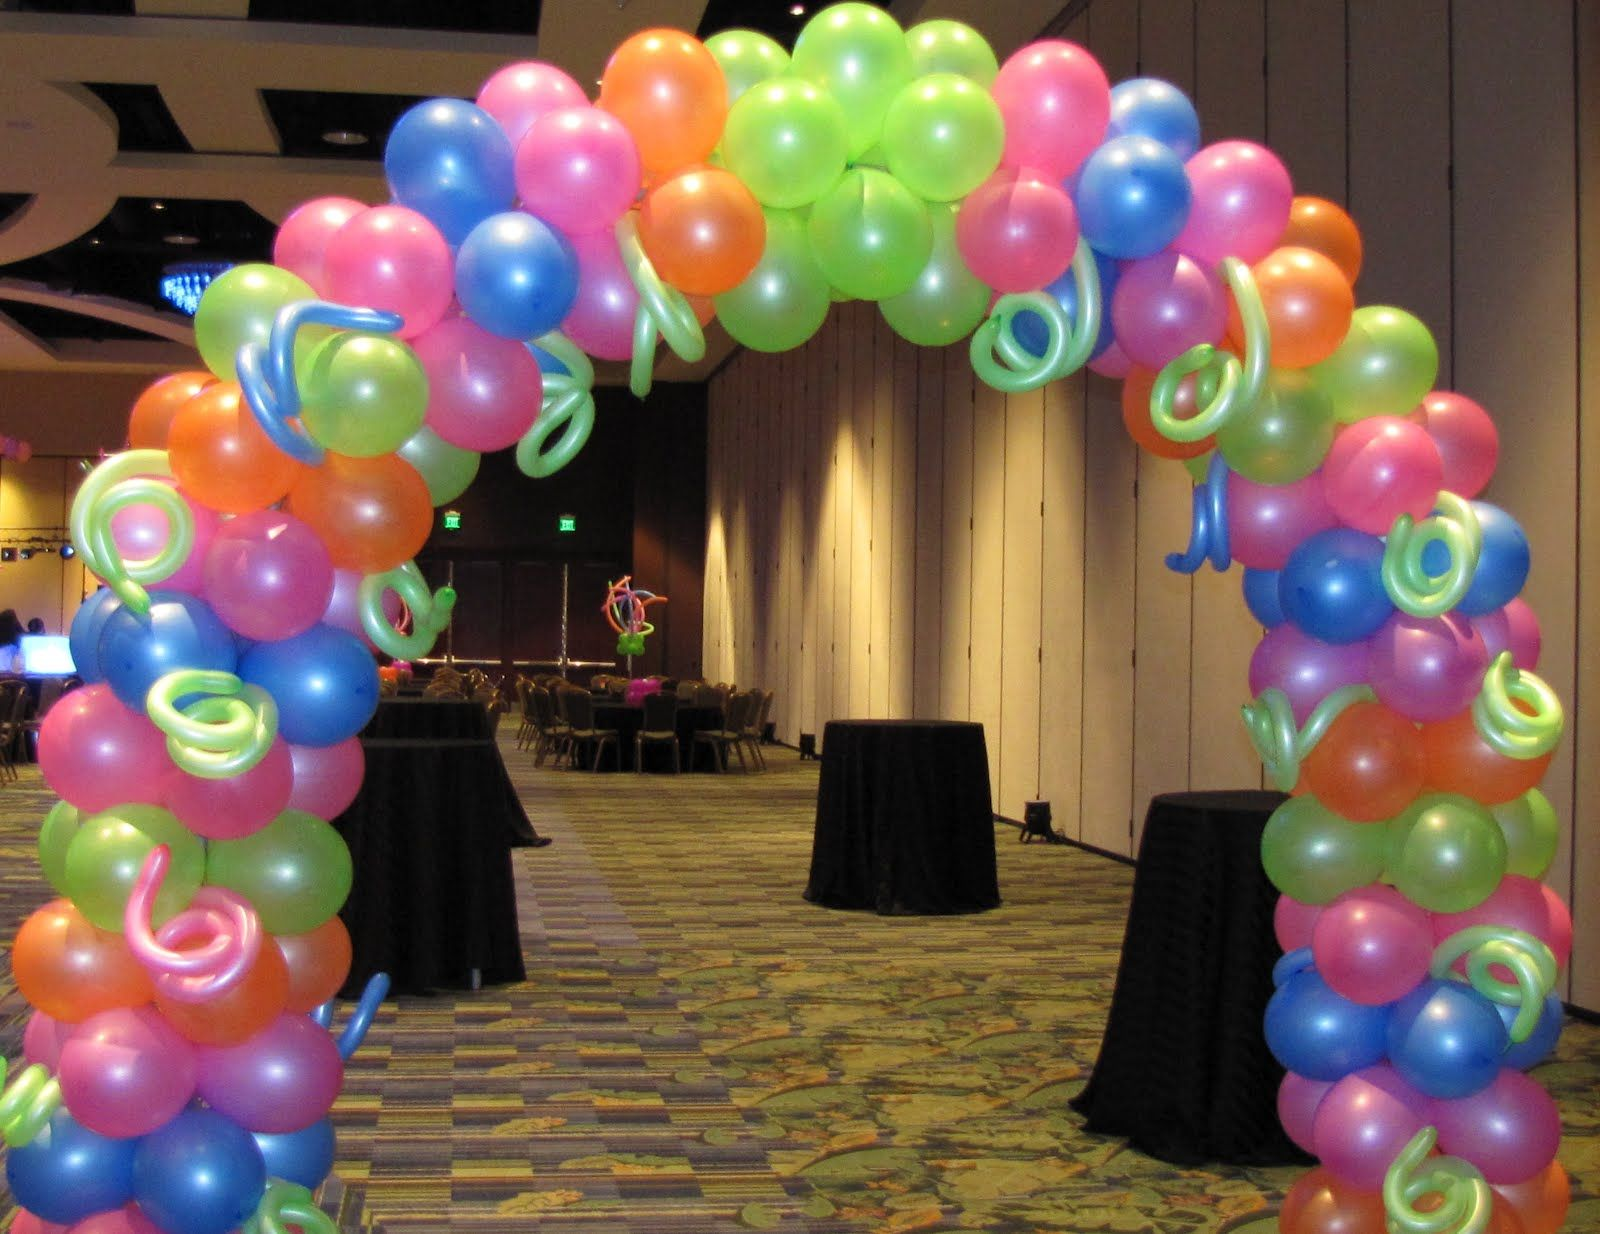 People Decorating For A Party picture perfect prom theme items |  company - special event